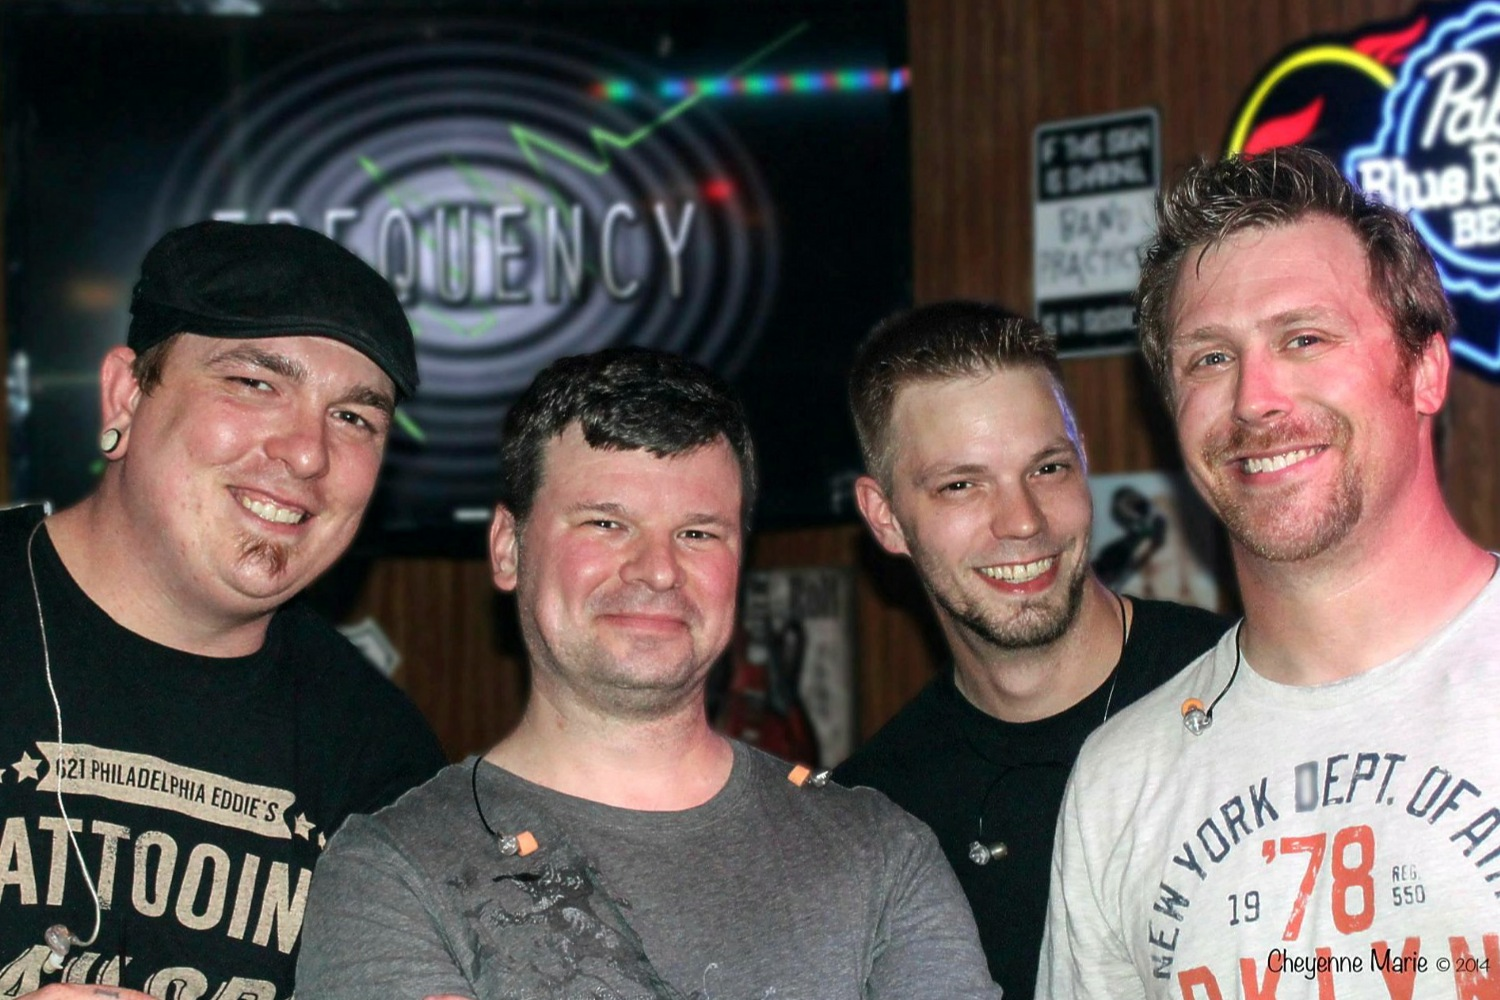 Live Music featuring Frequency at Shenanigan's Bar in Columbus, Nebraska - 